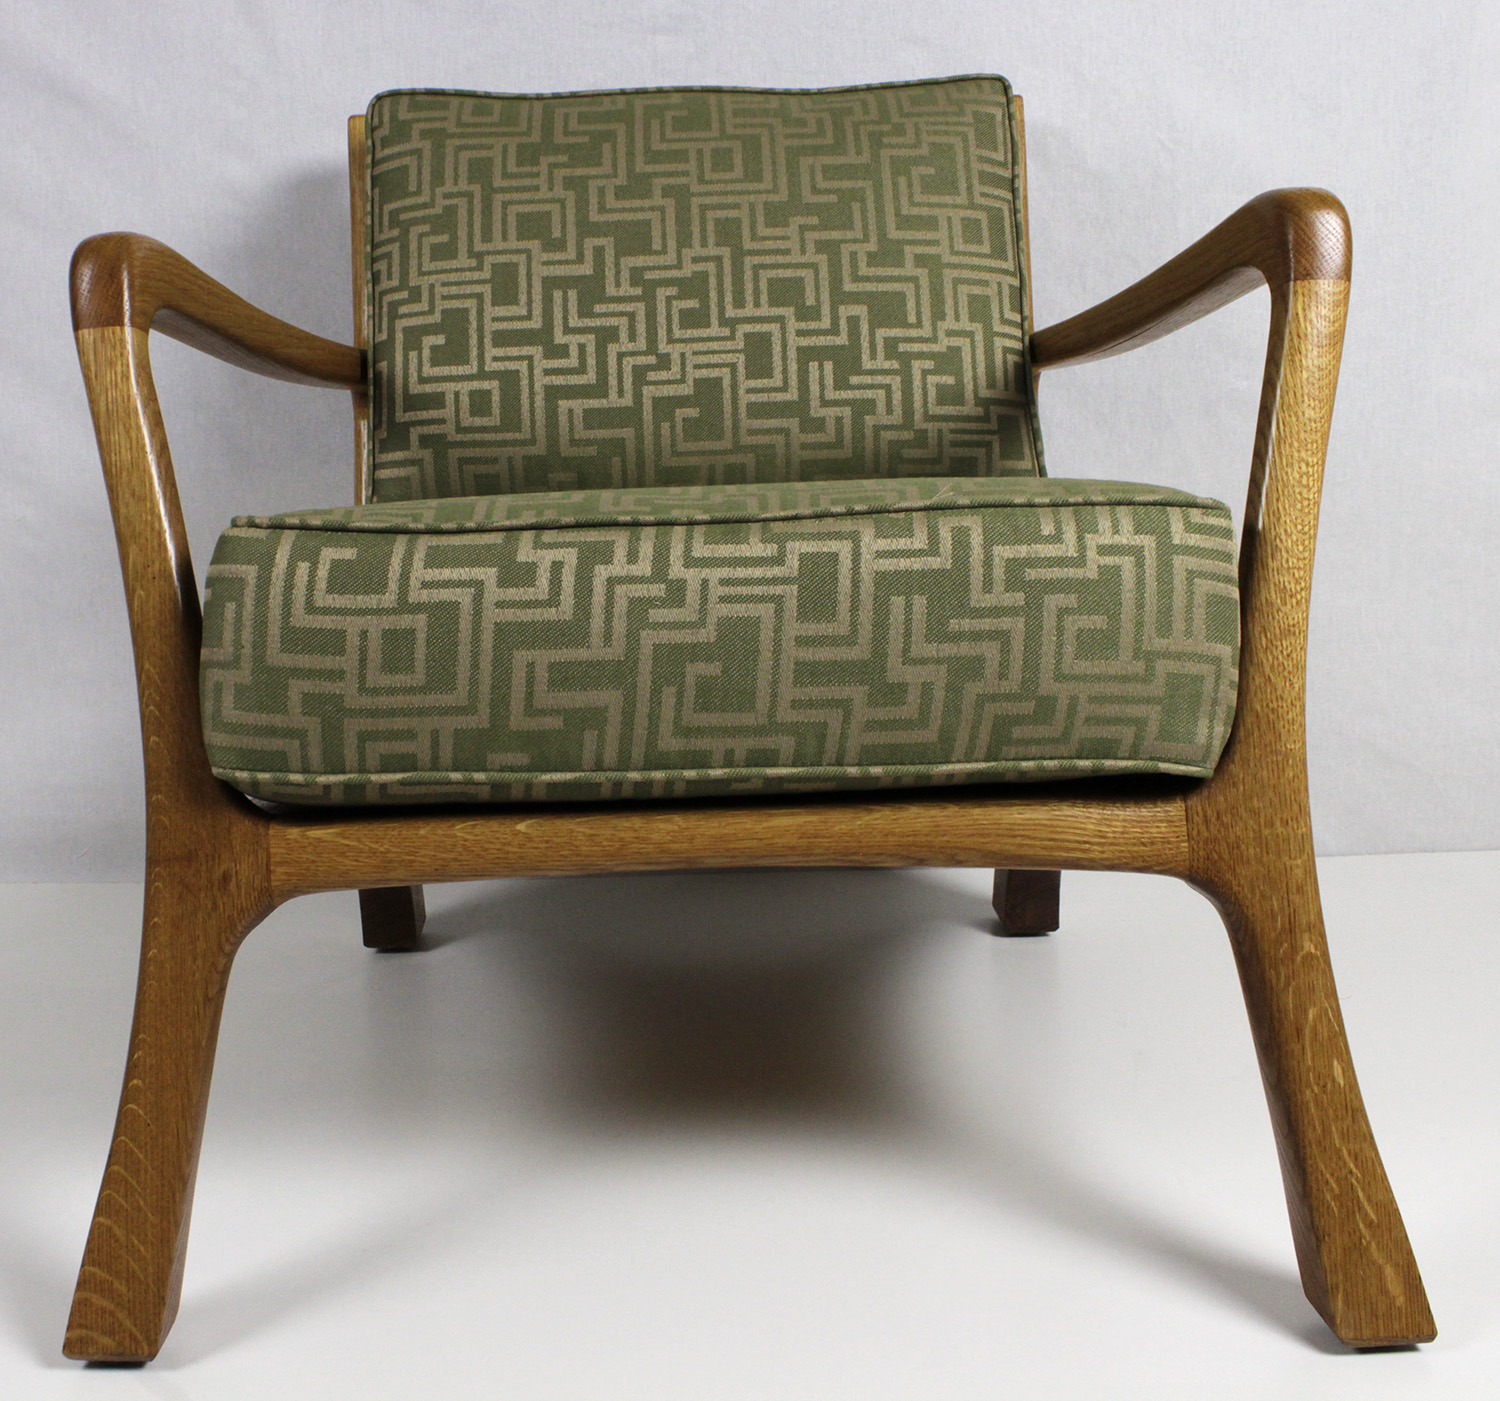 Sculpted mid century modern chair